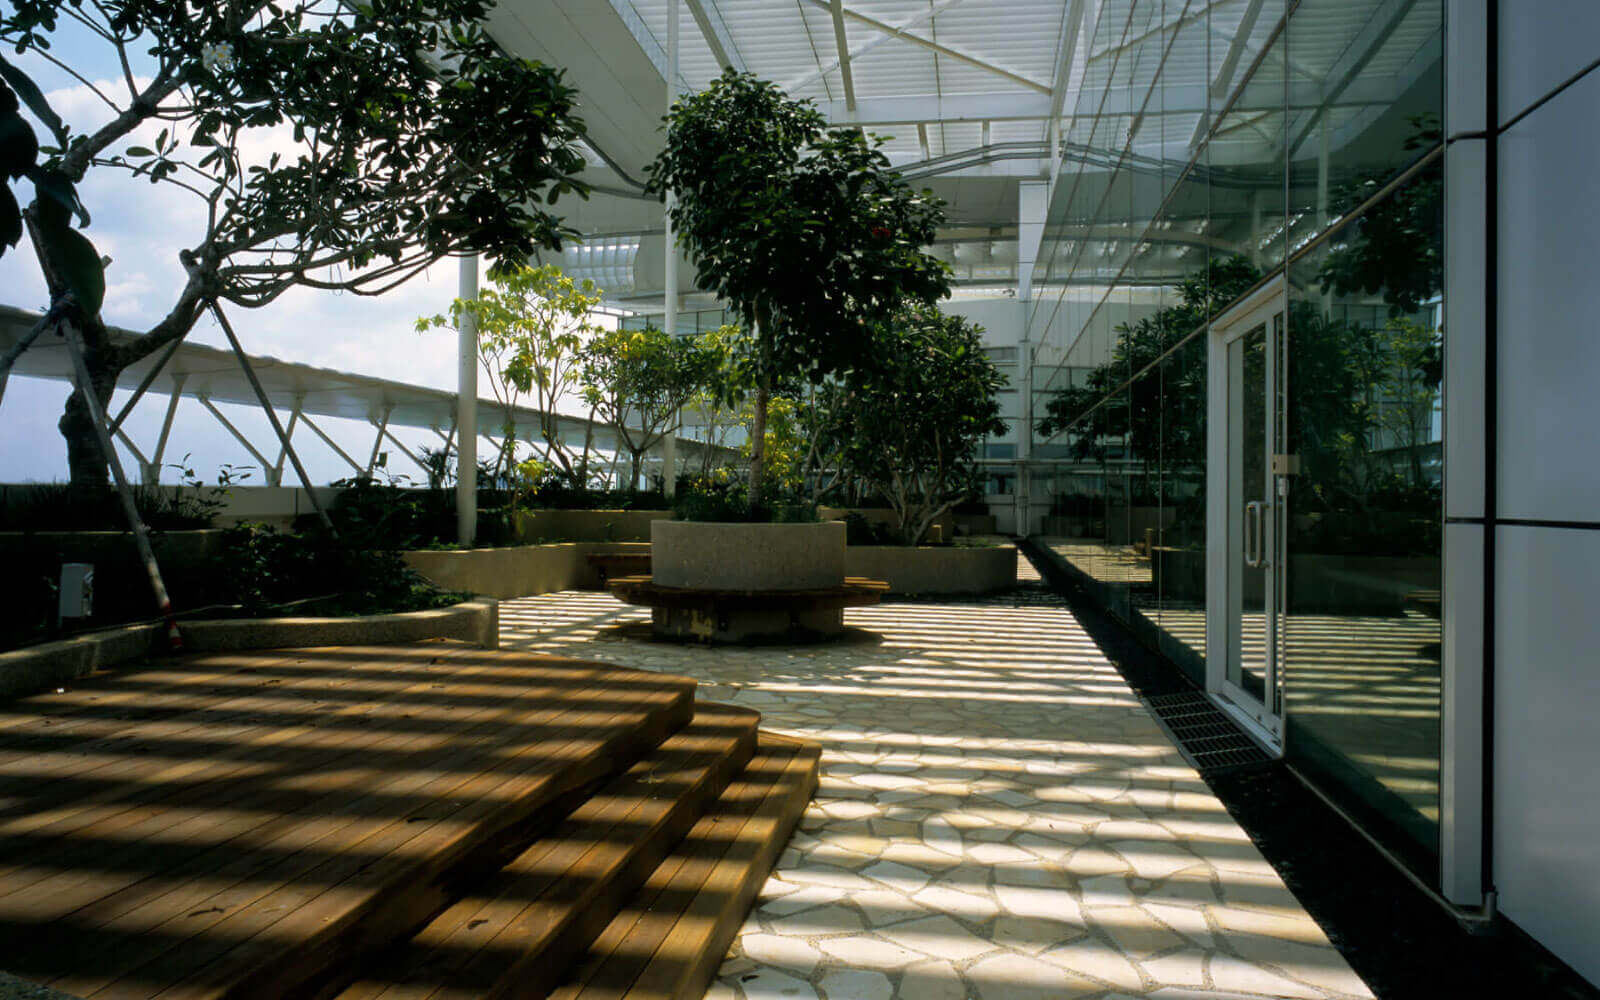 green architect landscaped gardens for National librarary Singapore